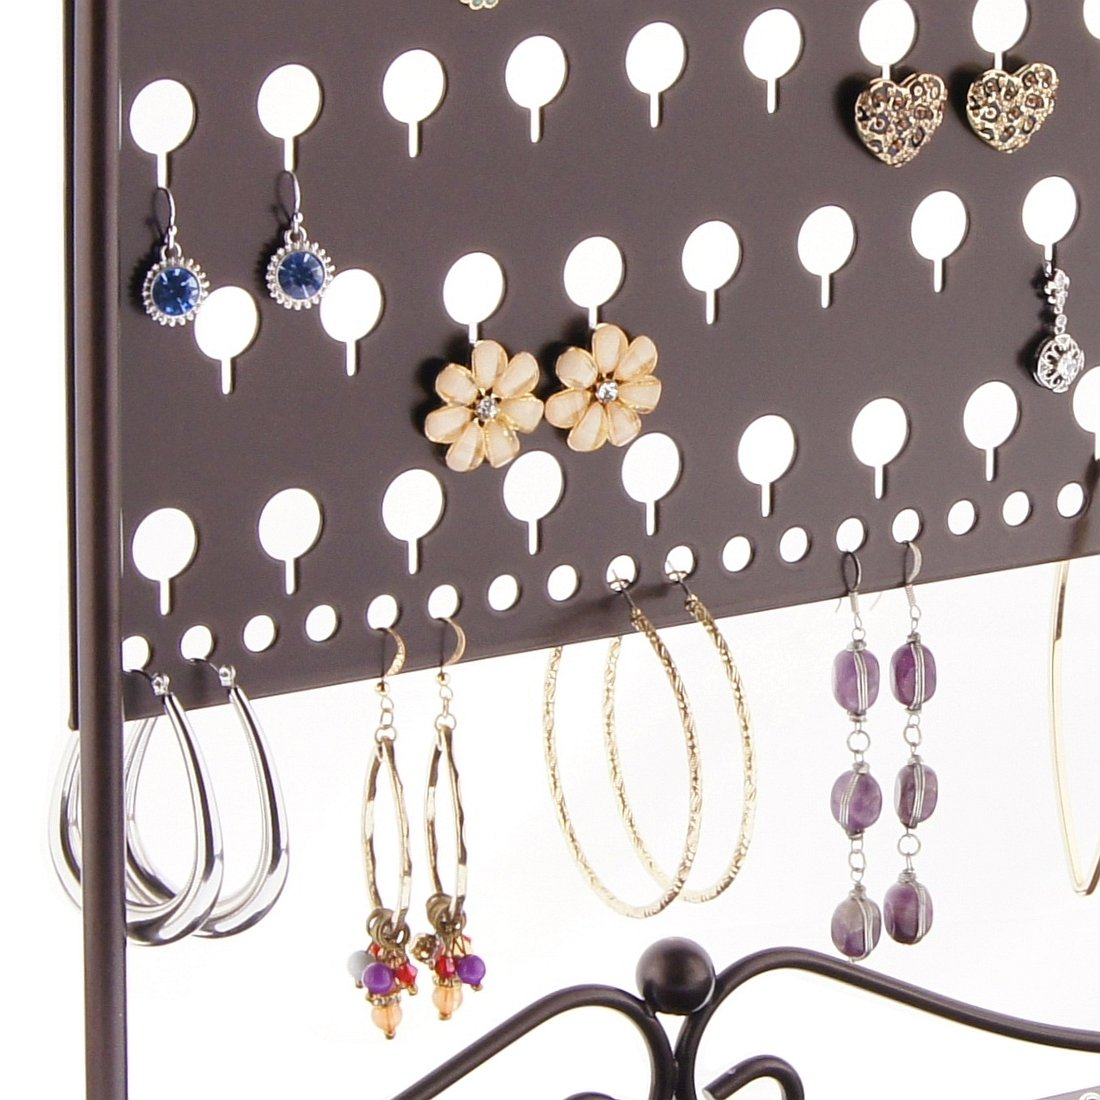 Earring Holder Organizer Stand Jewelry Organizer Hanging Earring Tree Storage Display Rack, Ginger Rubbed Bronze by Angelynn's Jewelry Organizers (Image #4)